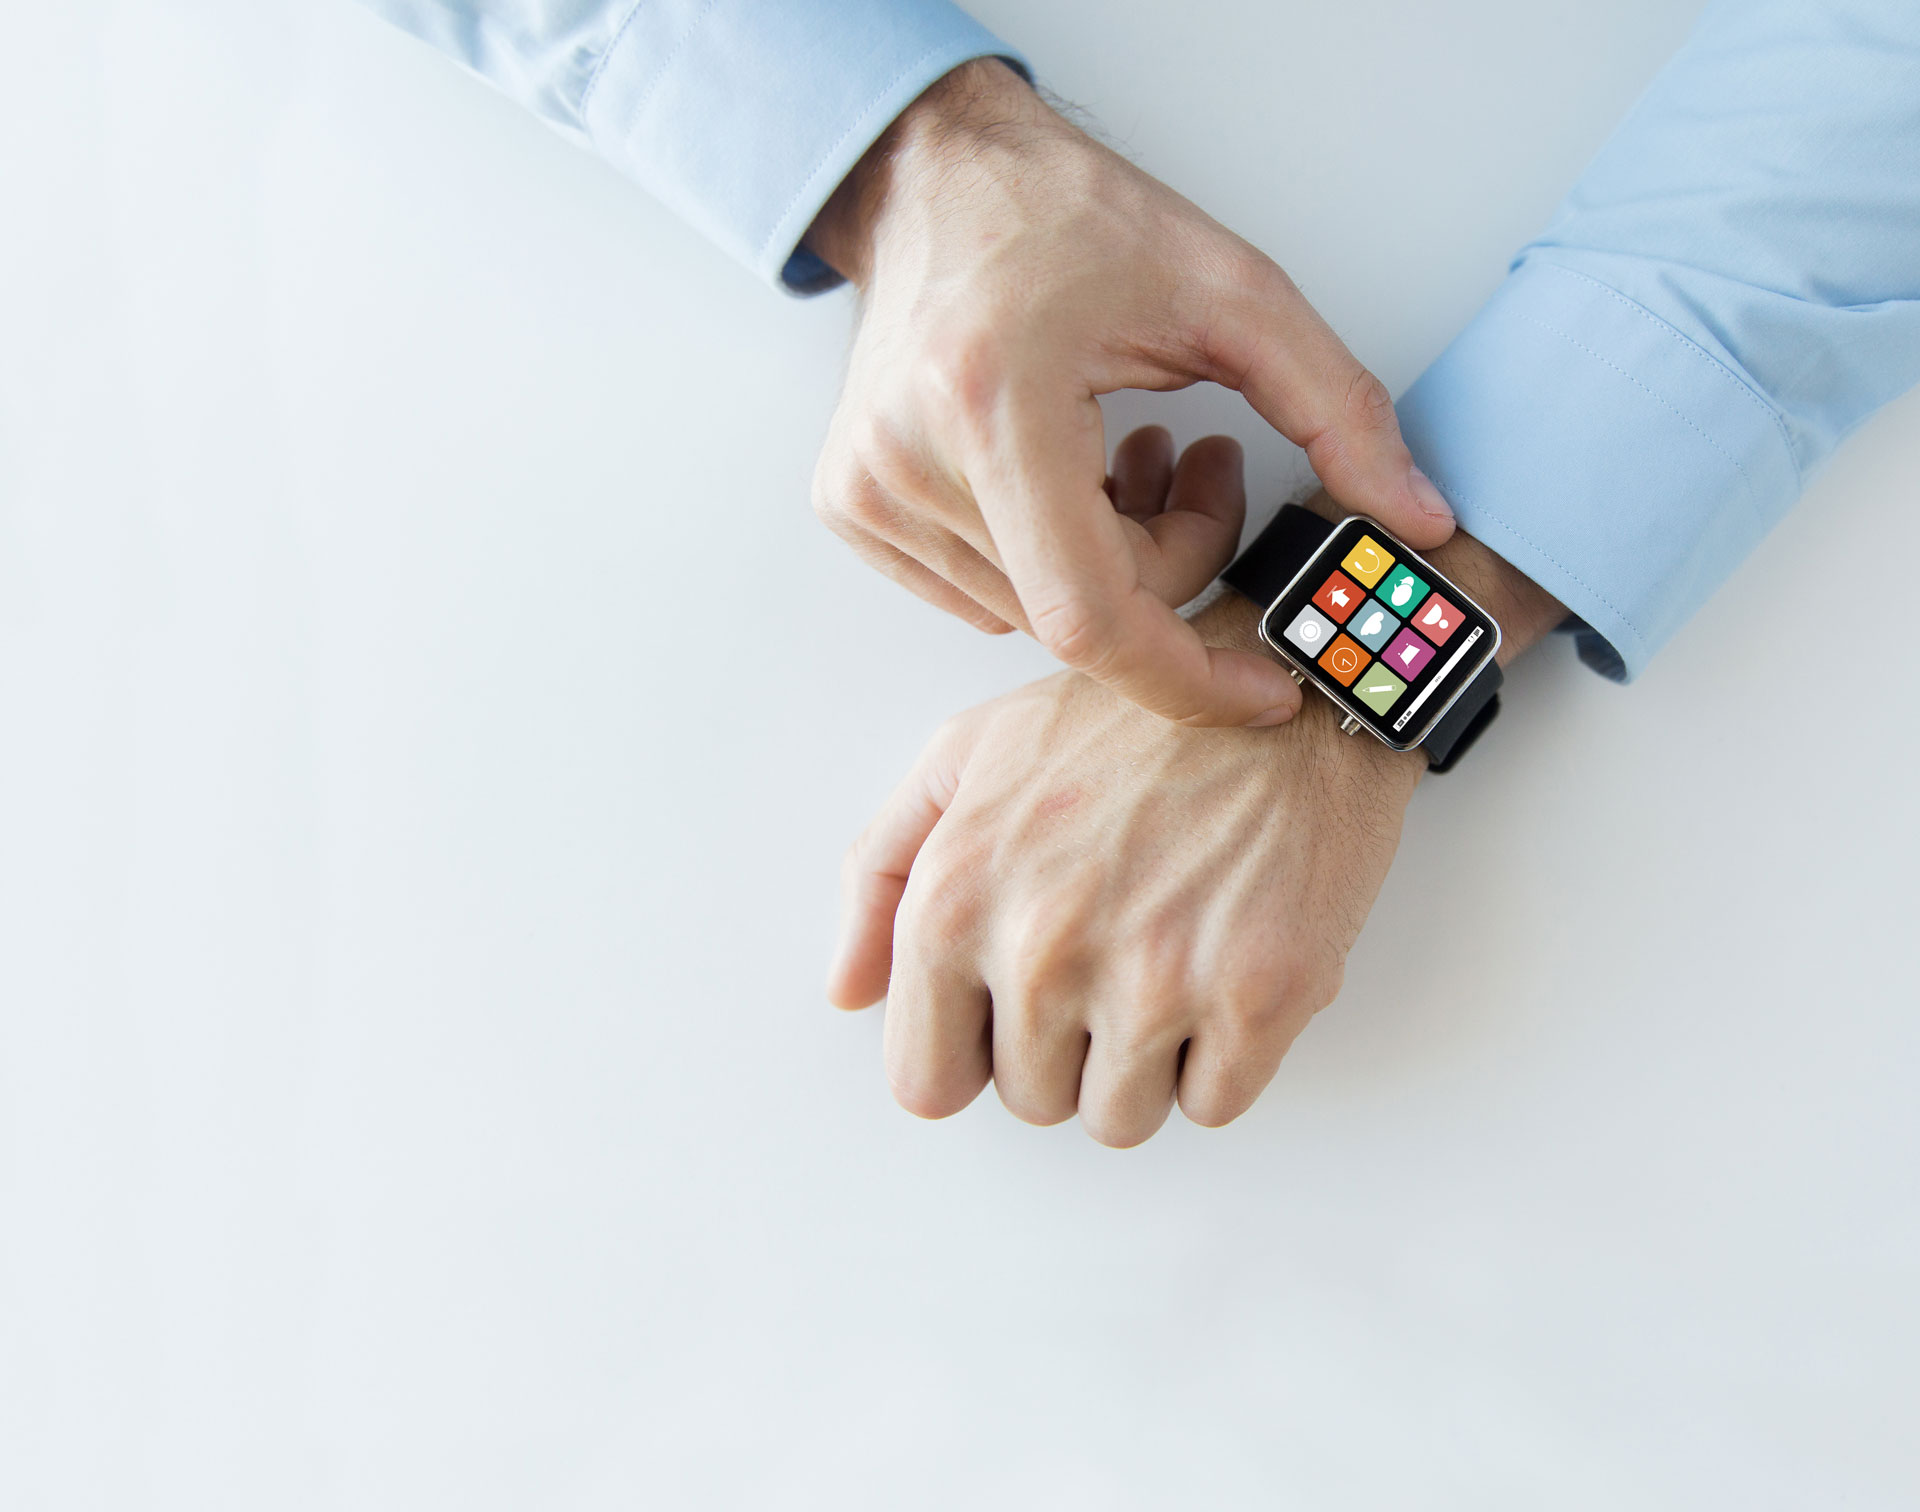 From the ashes of hype, the wearable technology industry has skyrocketed